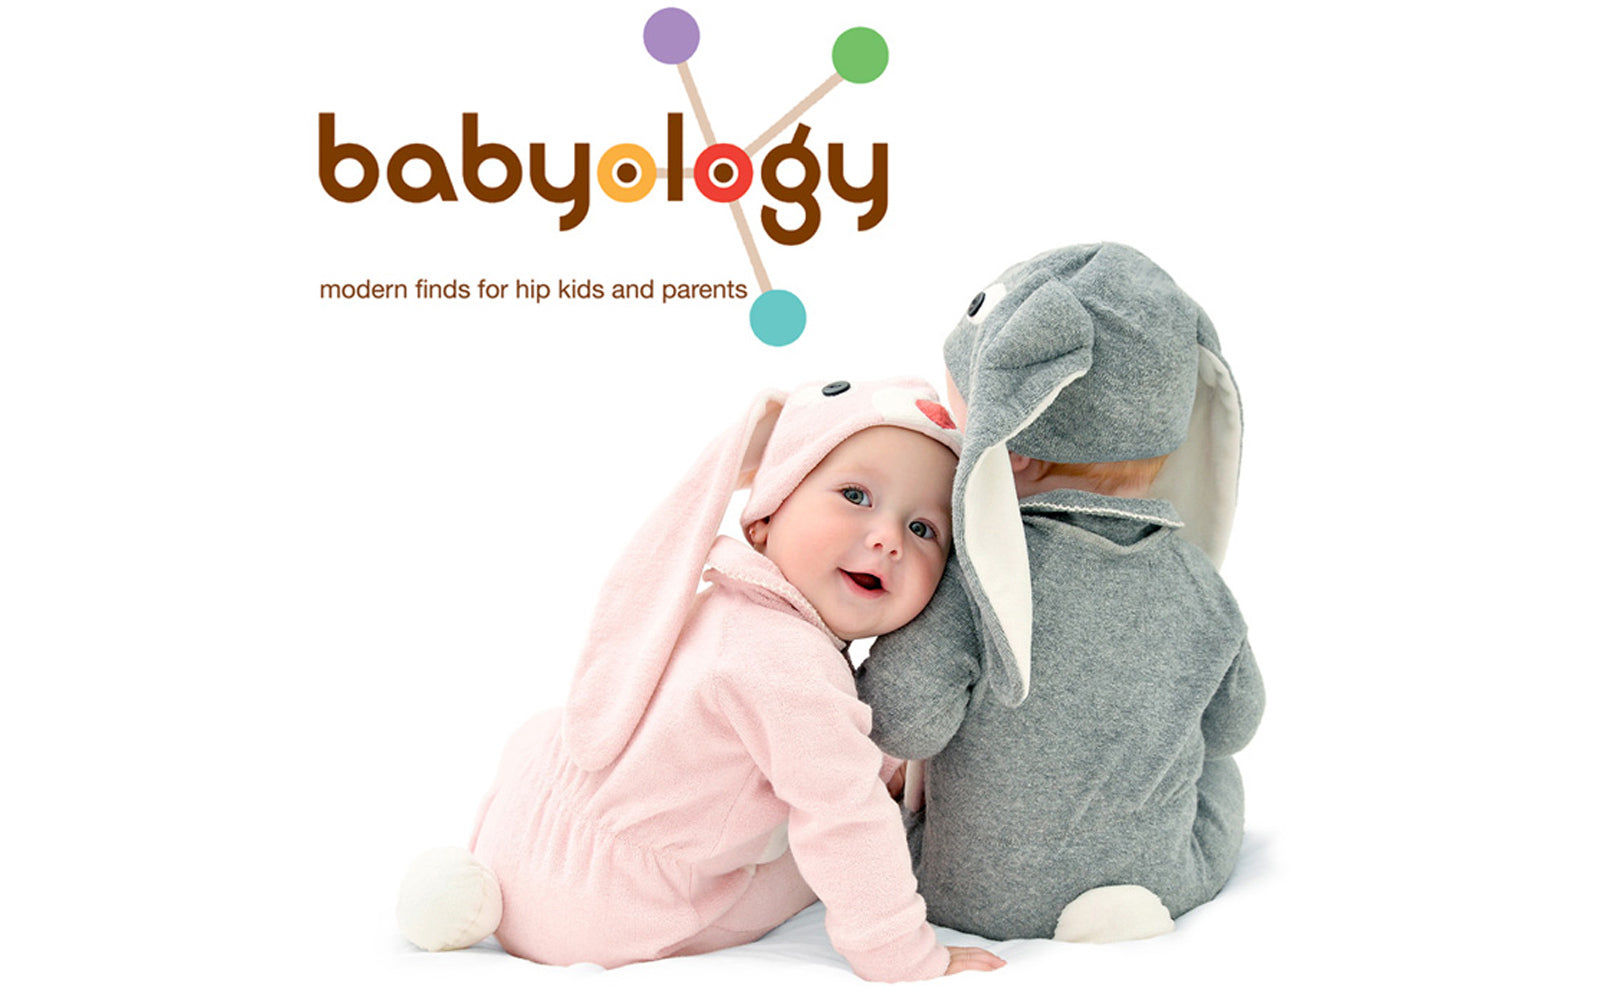 Babyology Easter Gift Guide – Chocolate-free Treats for Babies